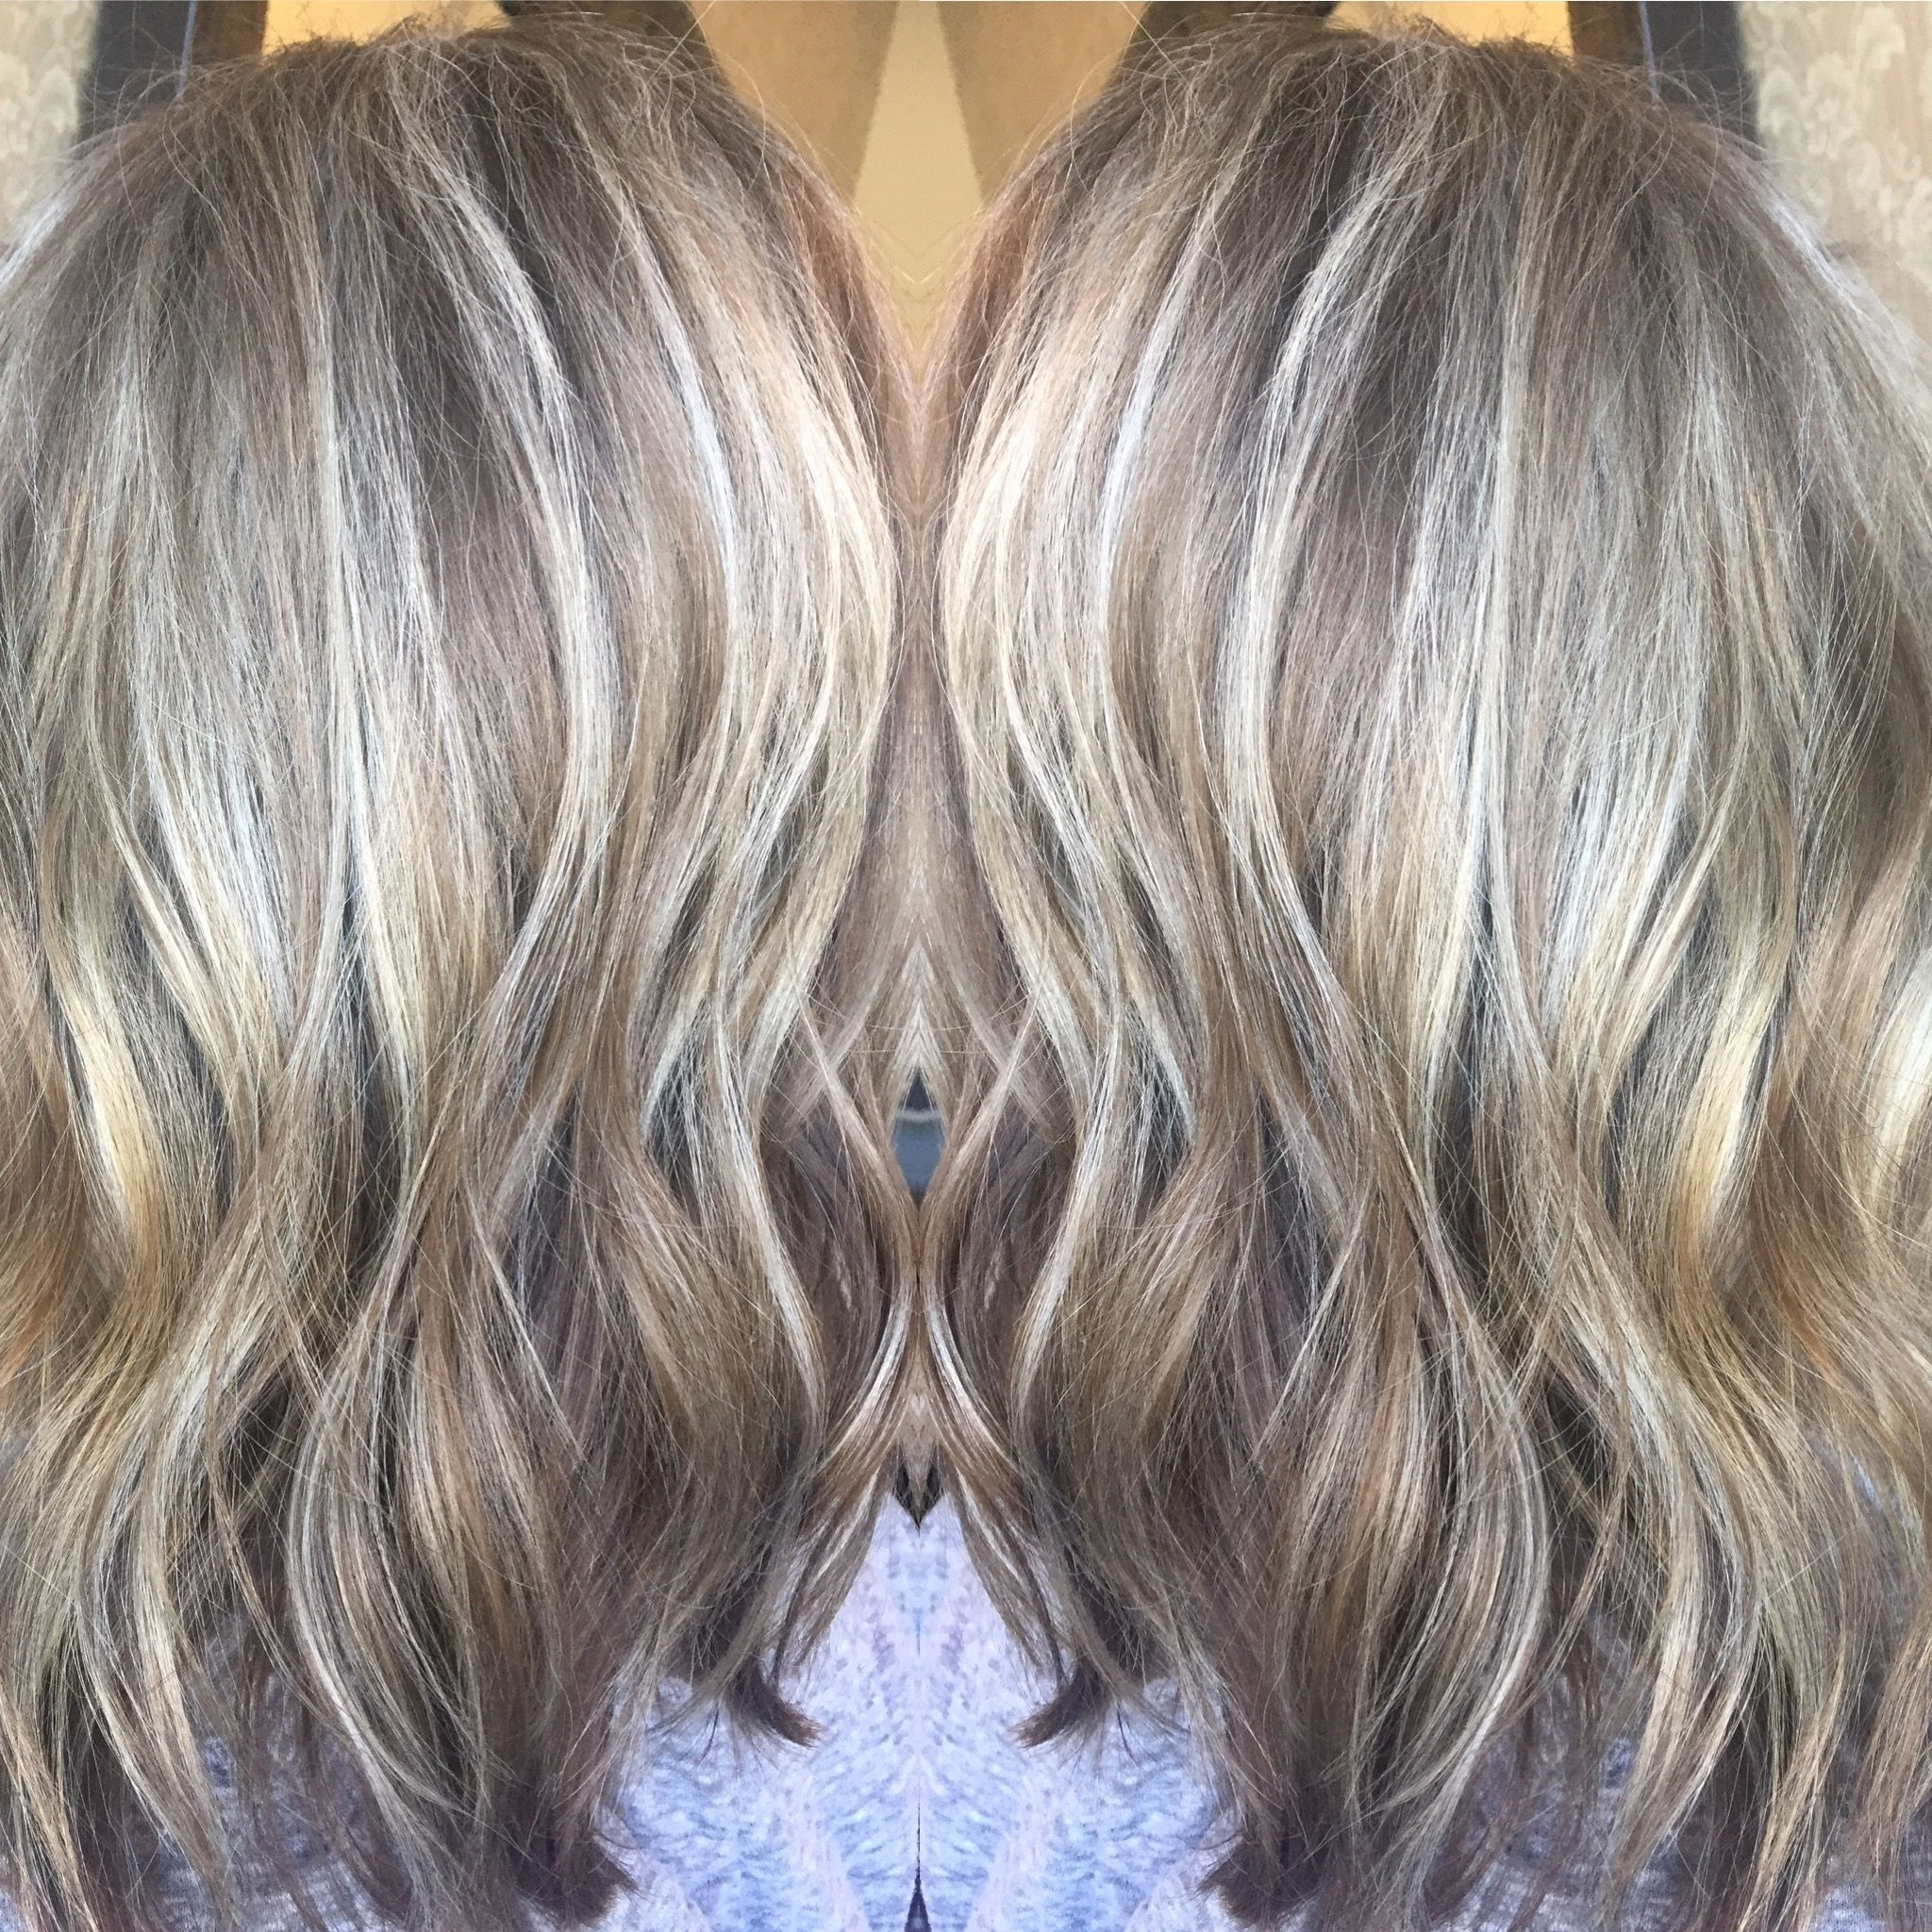 Beautiful Silver Blonde Lob,'platinum Blonde, Ash Blonde, Light Throughout Recent Dark And Light Contrasting Blonde Lob Hairstyles (View 4 of 20)